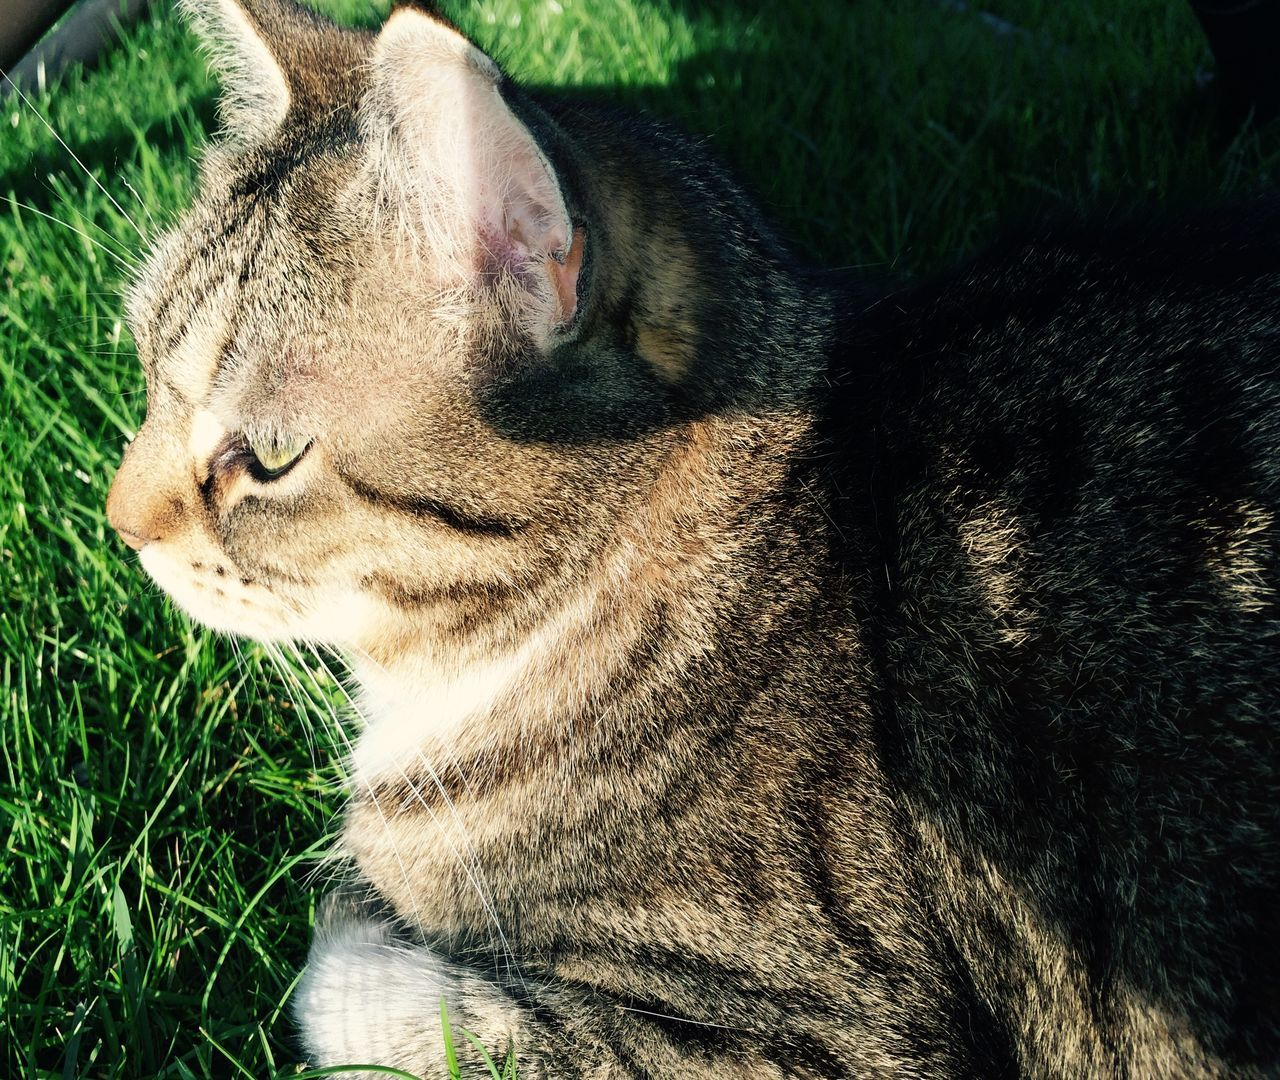 High Angle View Of Cat On Grassy Field